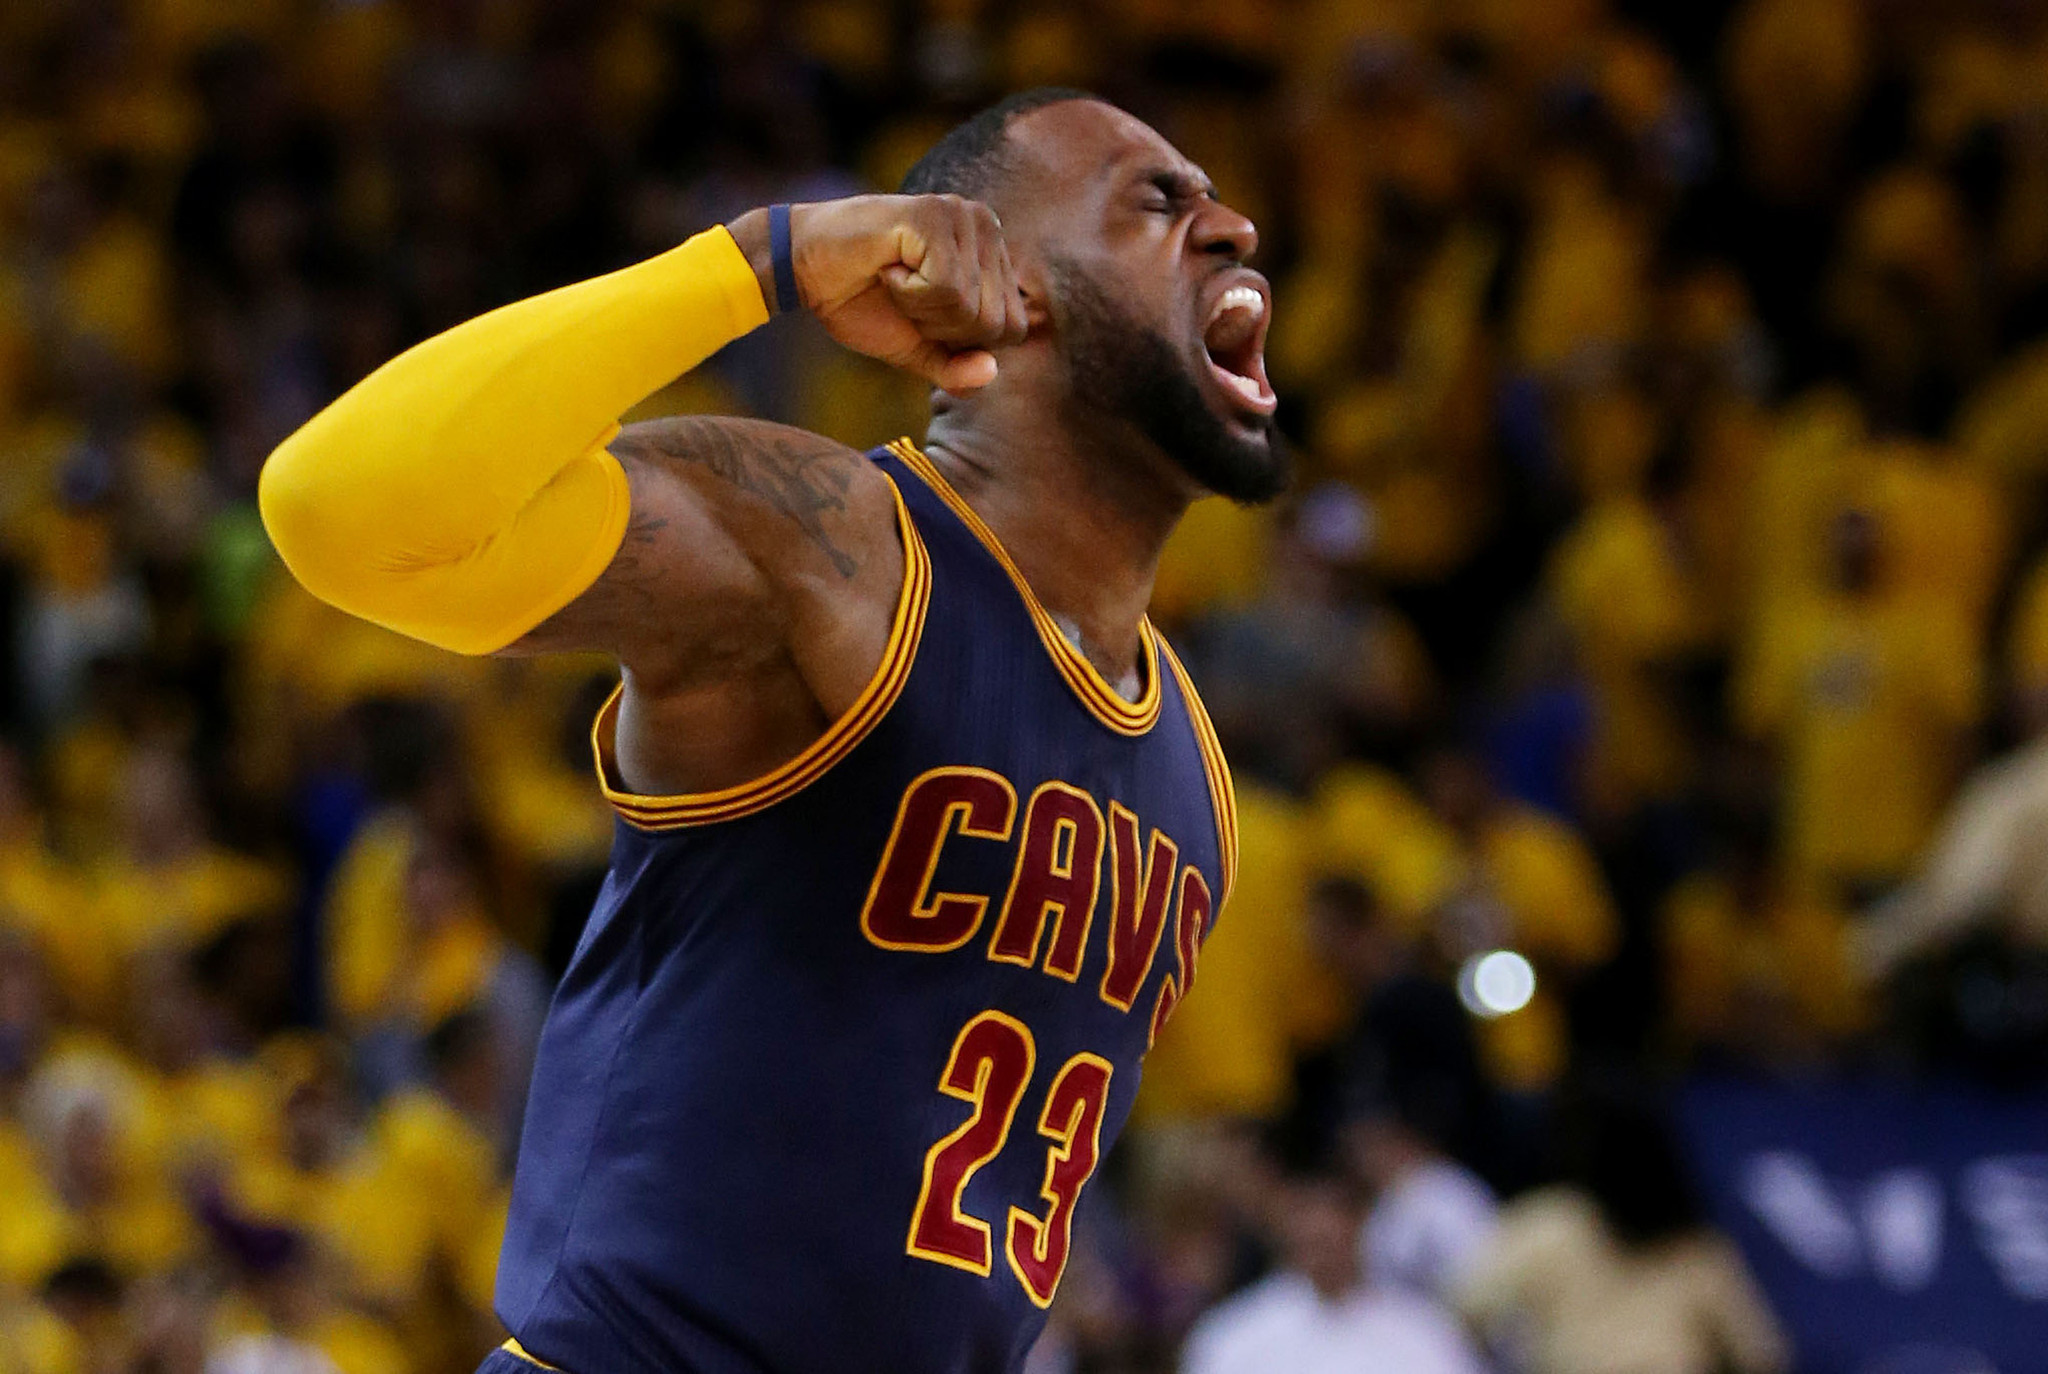 Cavaliers take it personally, beat Warriors in Game 2 of NBA Finals - LA Times